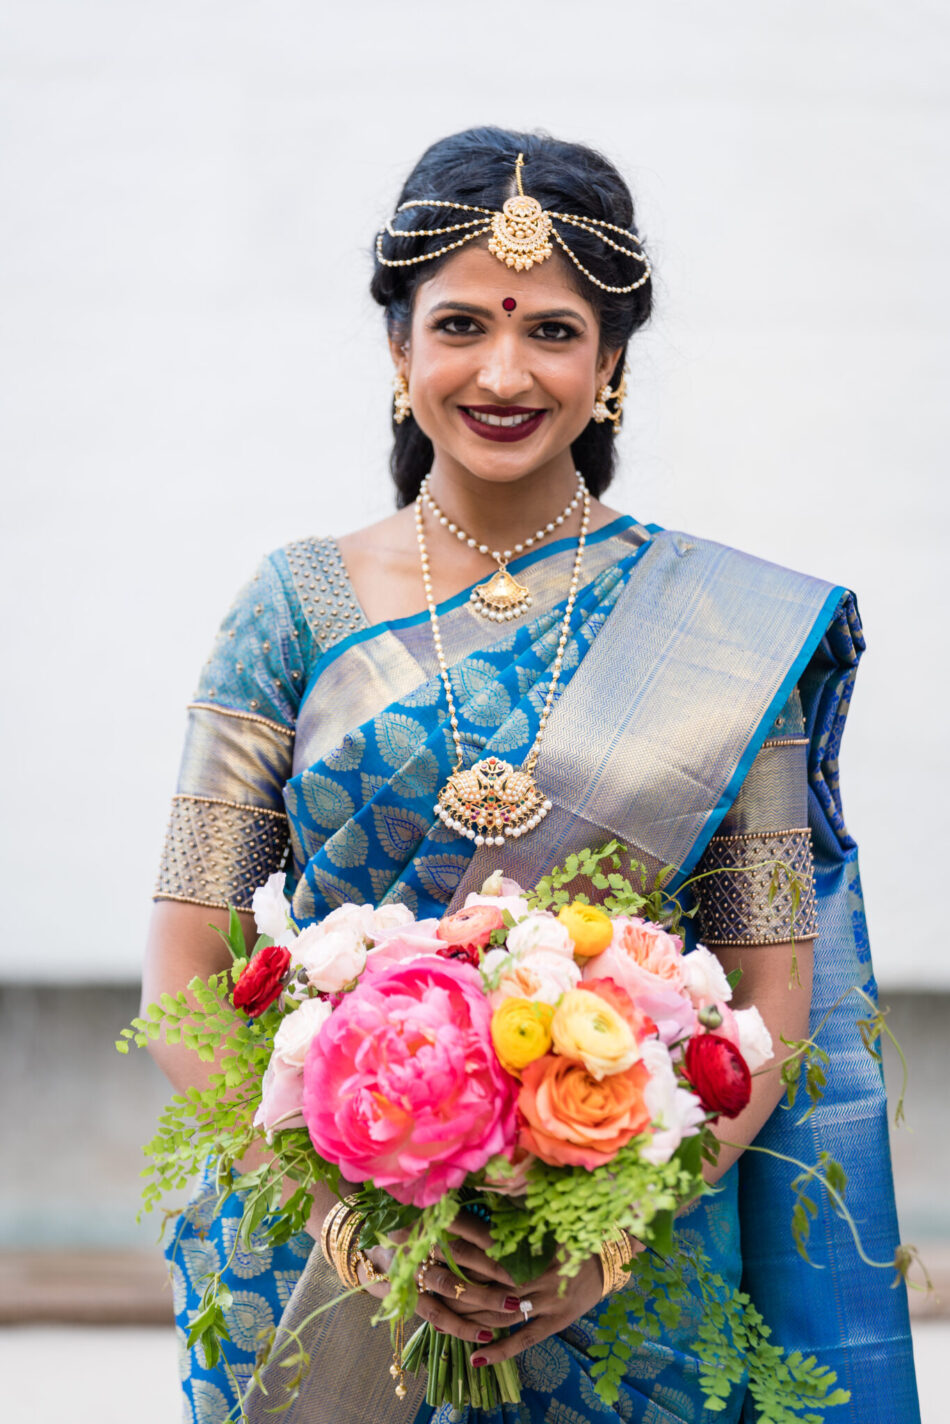 indian wedding, colorful bridal look, stunning vibrant wedding, floral design, florist, wedding florist, wedding flowers, orange county weddings, orange county wedding florist, orange county florist, orange county floral design, flowers by cina